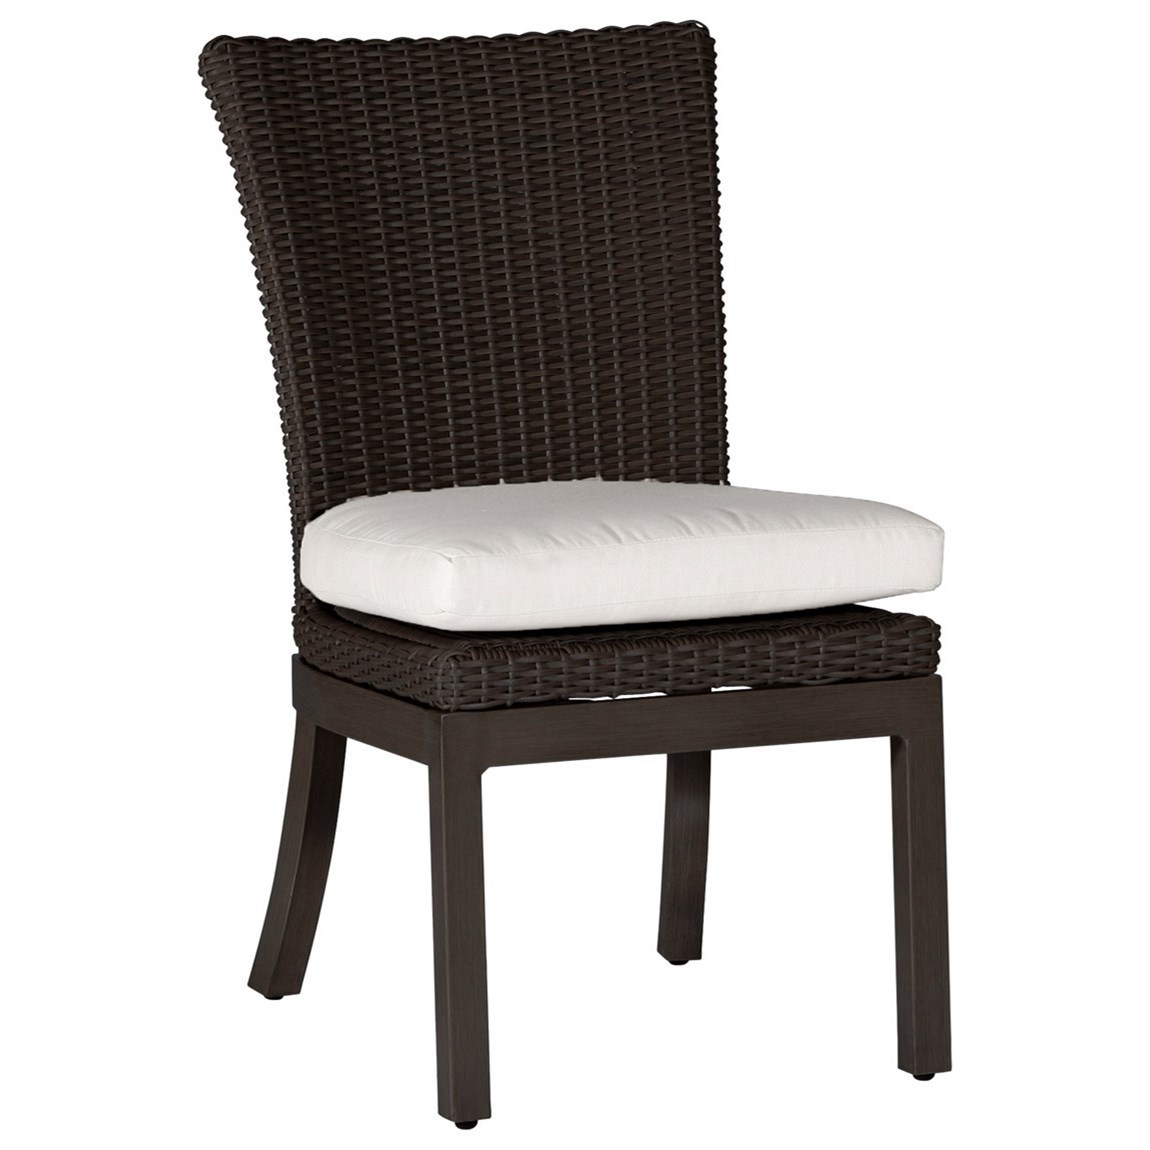 Rustic Rustic Side Chair by Summer Classics at Story & Lee Furniture